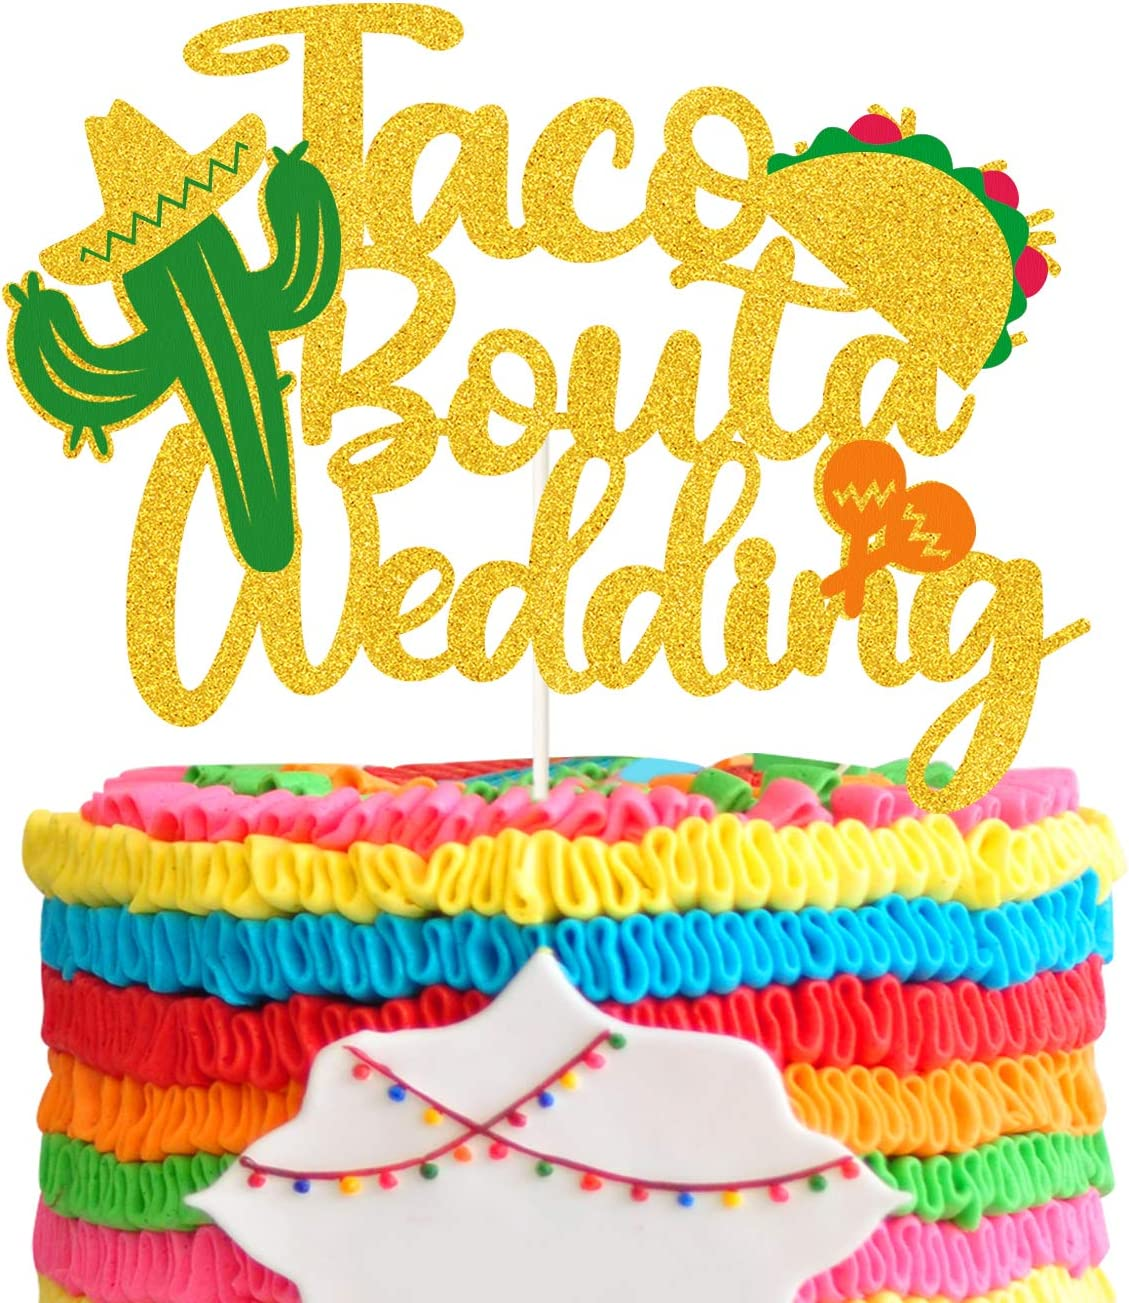 Taco Bout a Wedding Cake Topper Taco Banner Fiesta Decor for Fiesta Engagement Party Bachelorette Party or Wedding Shower Party Decoration